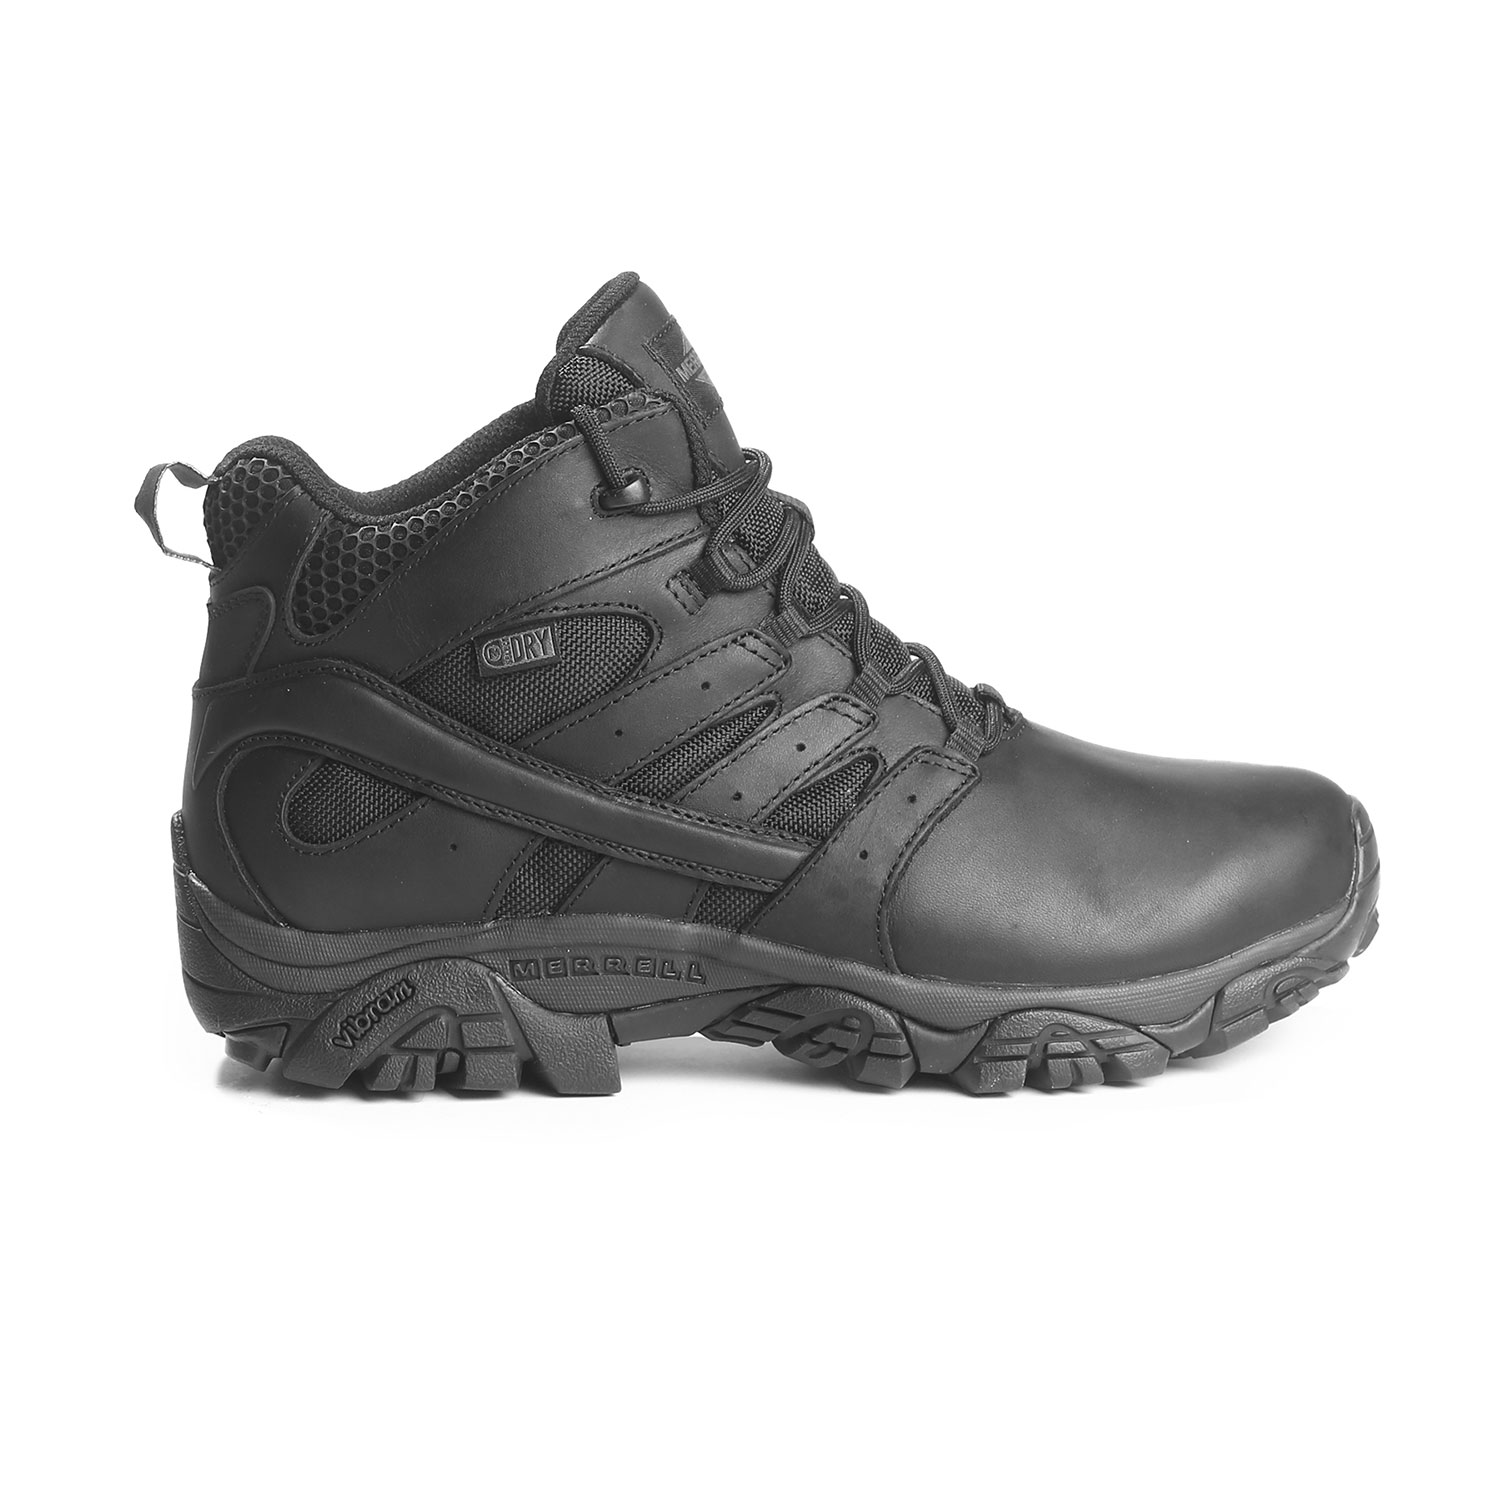 ab80bb33fc Merrell Moab 2 Mid Tactical Response Waterproof Boots.